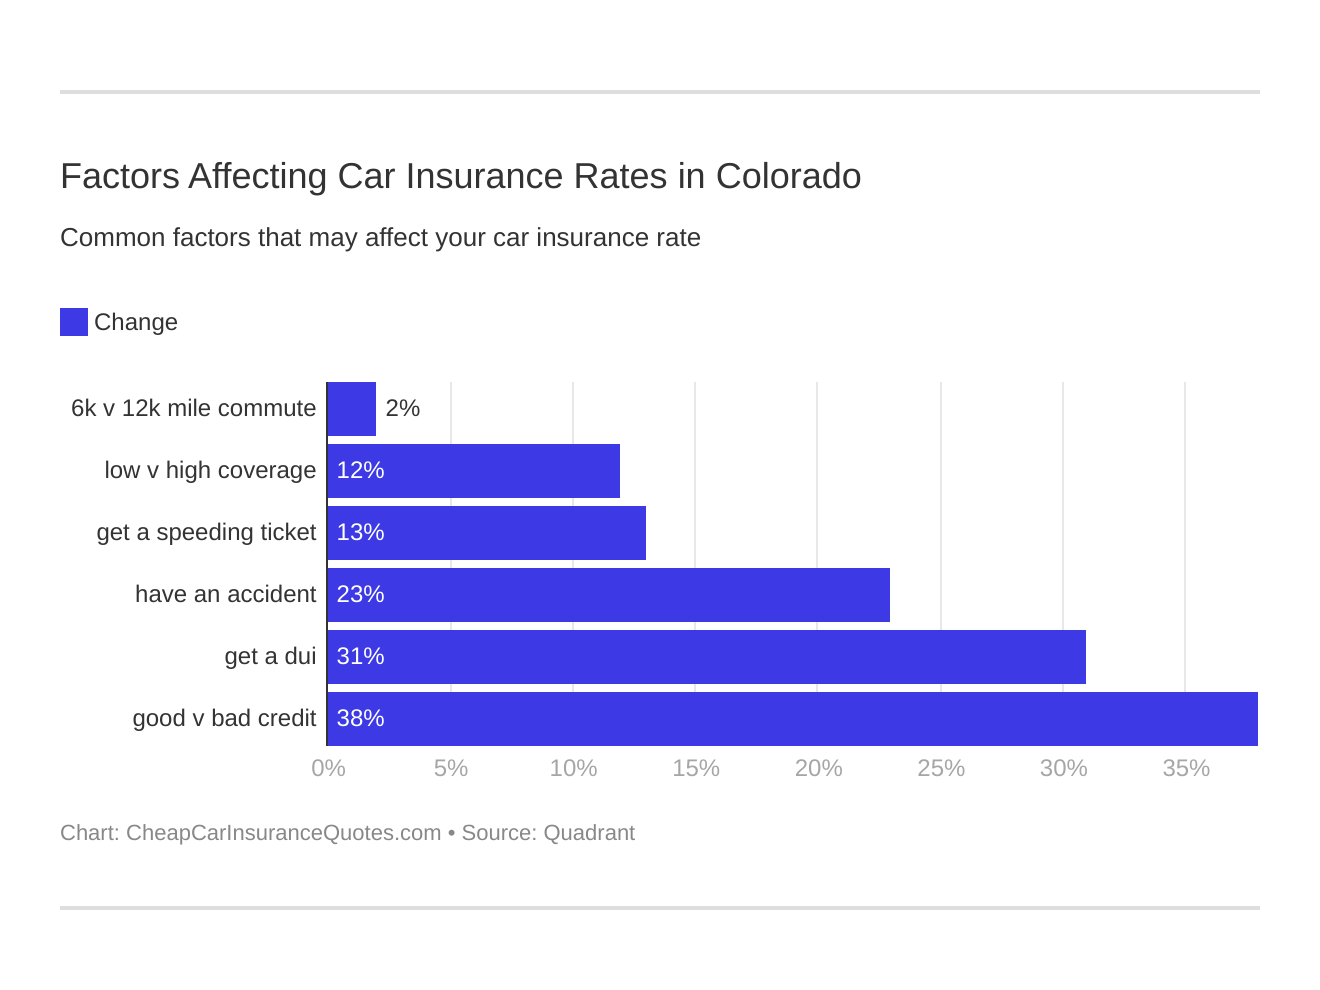 Factors Affecting Car Insurance Rates in Colorado